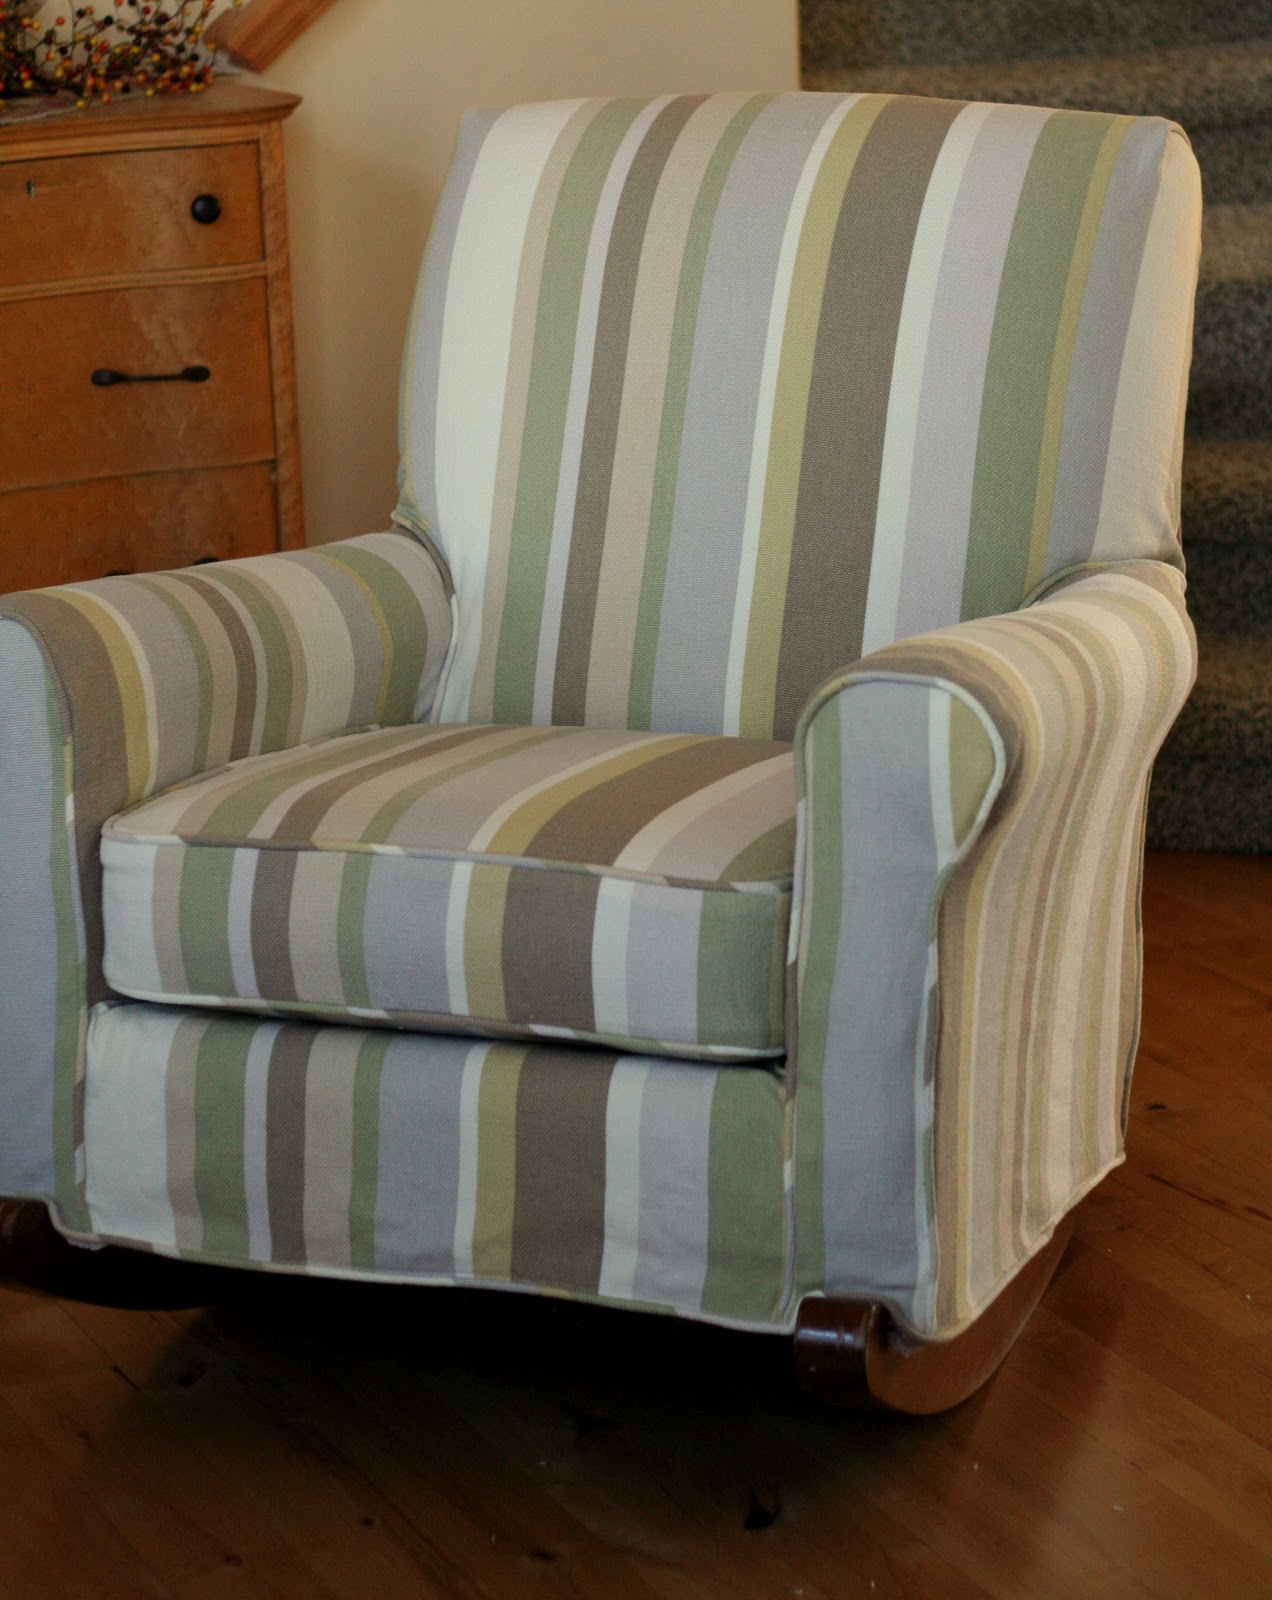 Upholstered Rocking Chair Custom Slipcovers By Shelley Upholstered Rocking Chair